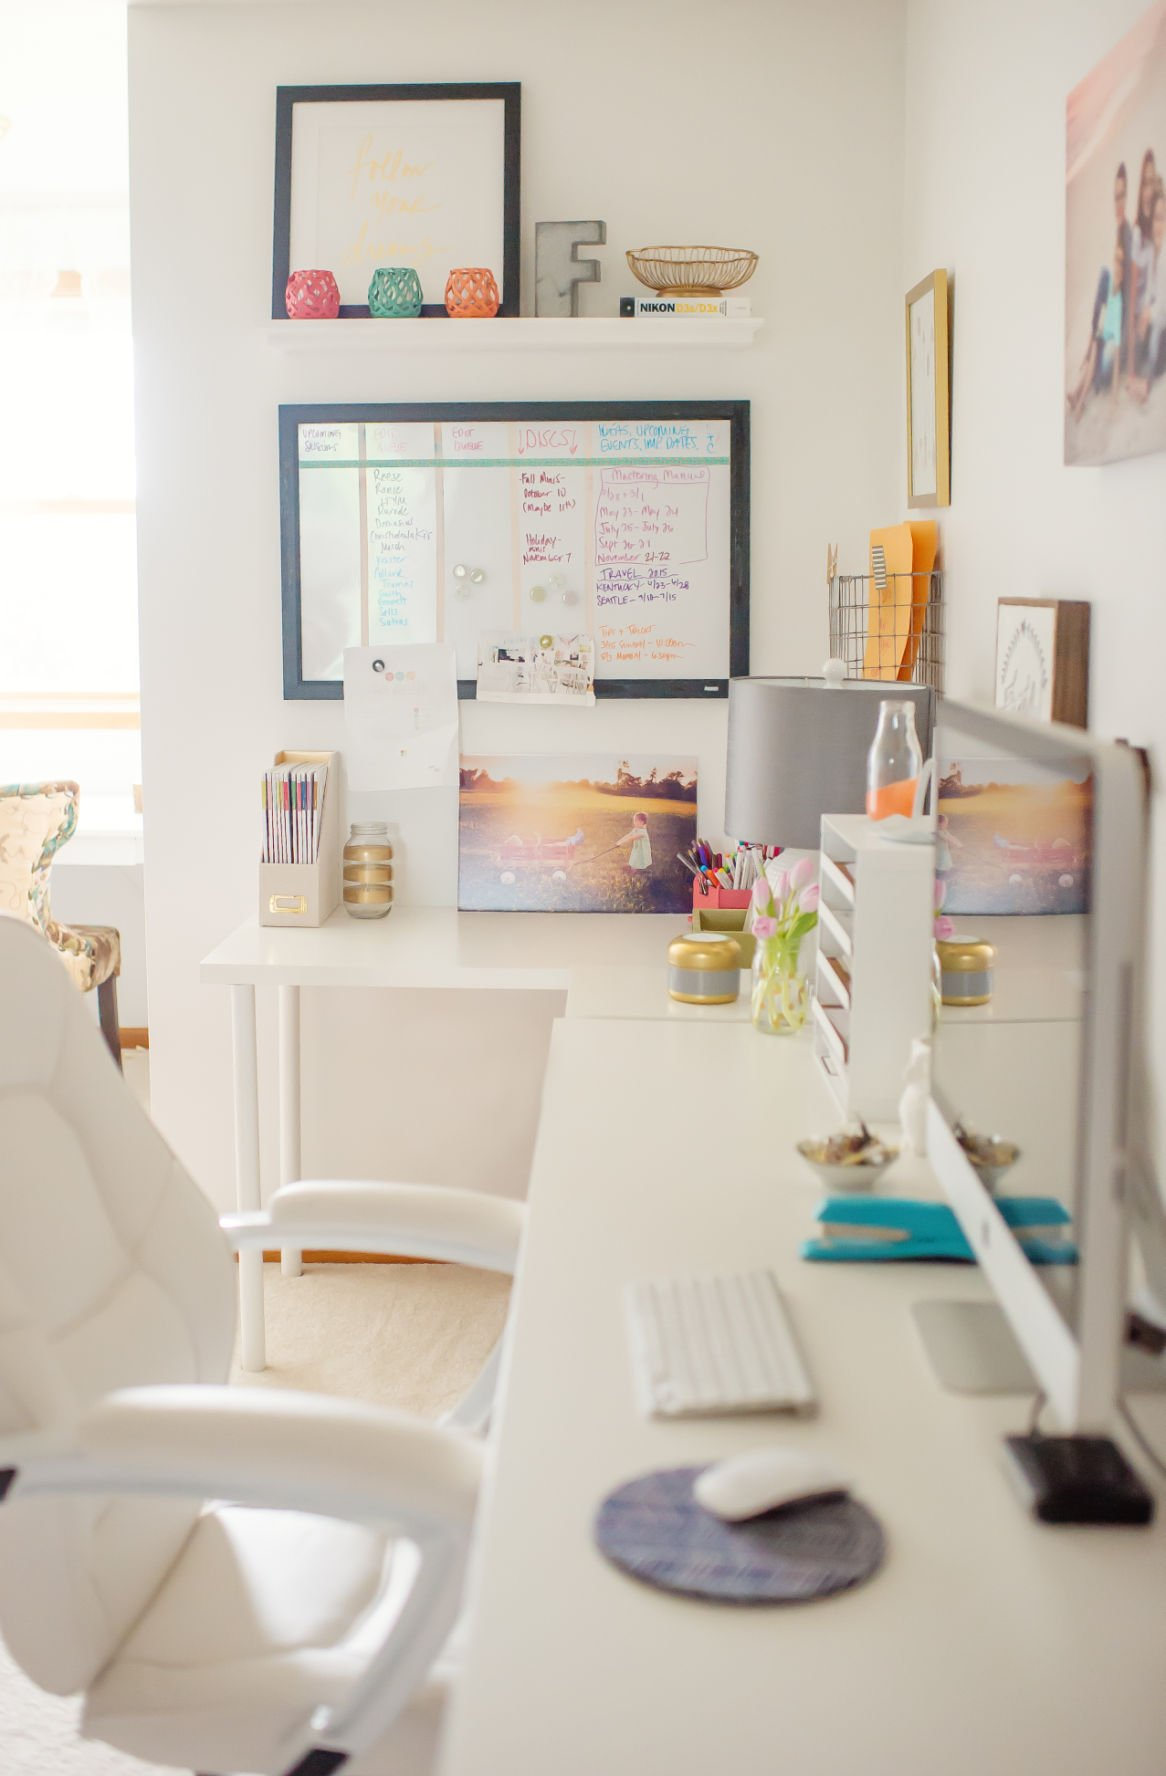 Design ideas for your home office Design